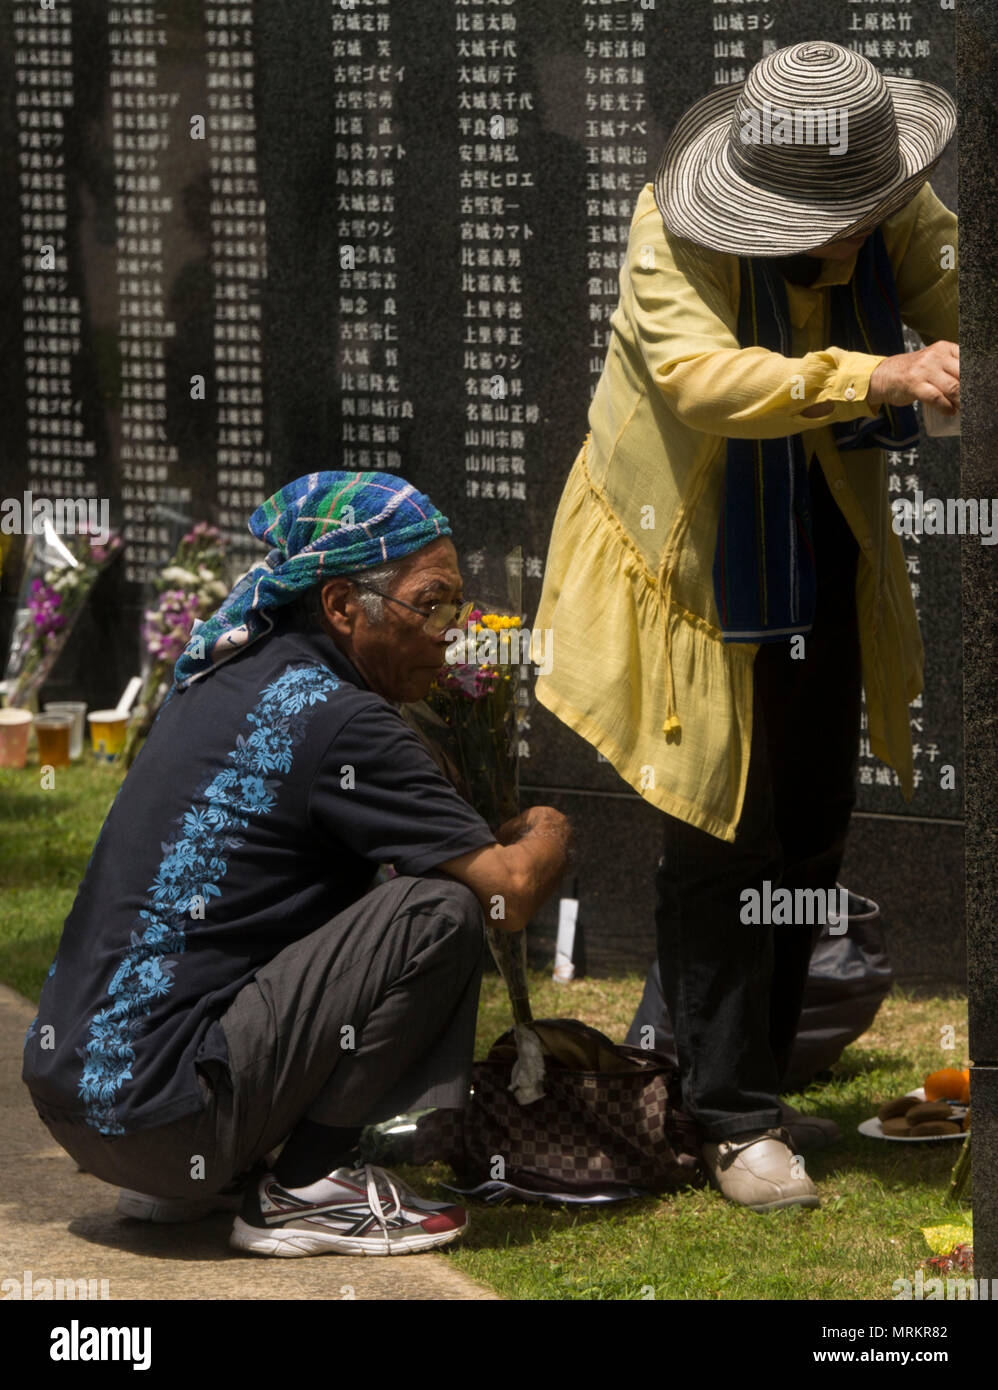 Okinawan residents place flowers and pray at the Cornerstone of Peace memorial wall during the 2017 Okinawa Memorial Day service June 23, 2017 at Peace Memorial Park, Itoman, Japan. The ceremony brought together service members and Okinawan residents to honor all who lost their lives in the Battle of Okinawa. The memorial walls are inscribed with over 240,000 names of people who died, regardless of nationality, civilian or military status in the battle. During the ceremony all who attended stood for a moment of silence honoring those who gave the ultimate sacrifice for their country. (U.S. Mar Stock Photo